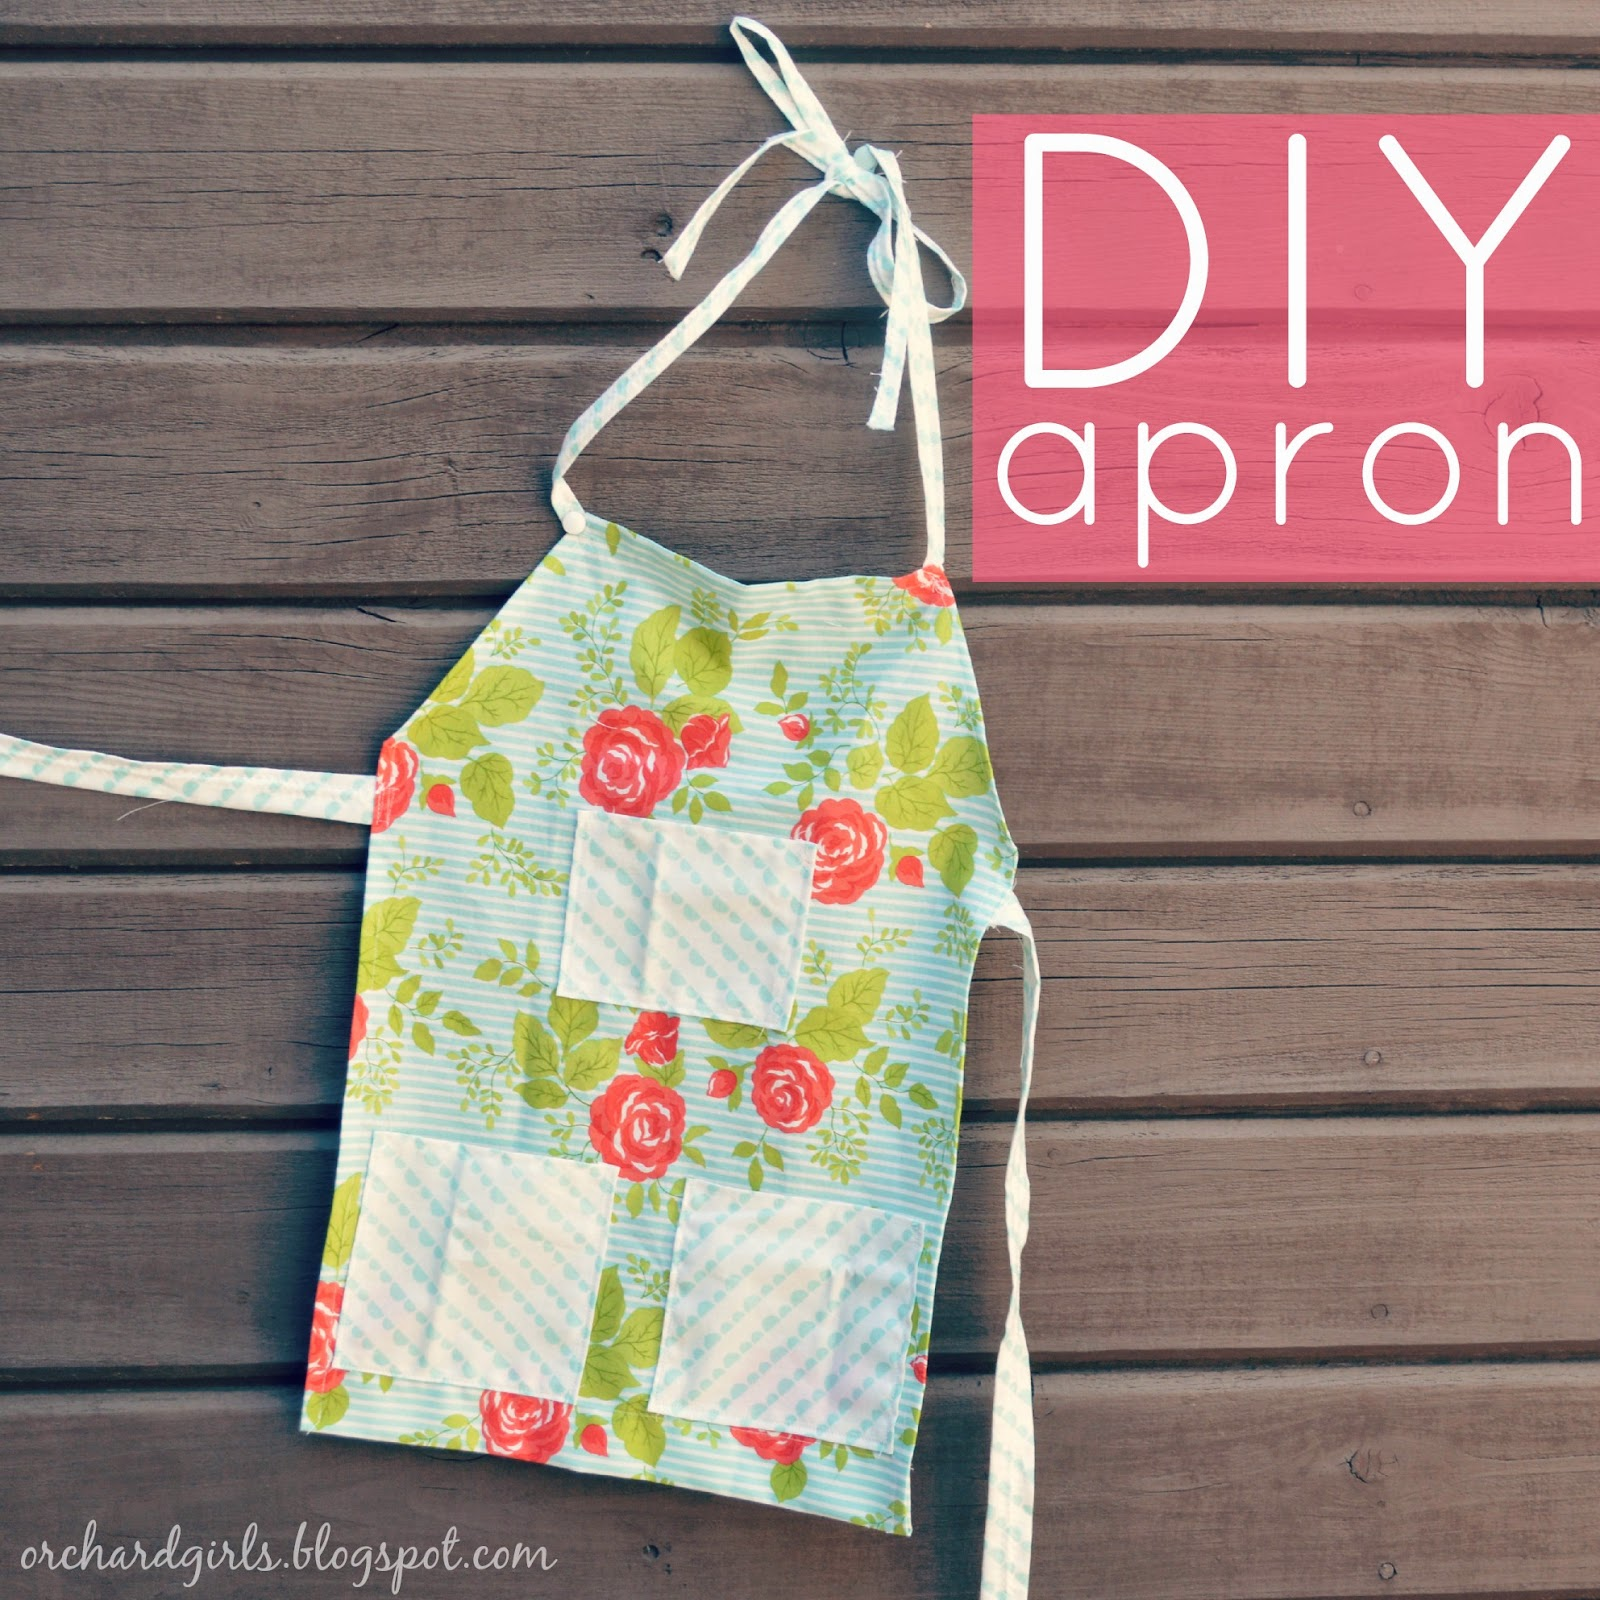 DIY Child's Apron is rated out of 5 by Lowest price guaranteed· Free catalogs available· Over 80 years of fun!Types: Supplies, Decorations, Favors, Costumes, Tableware, Photo Props.